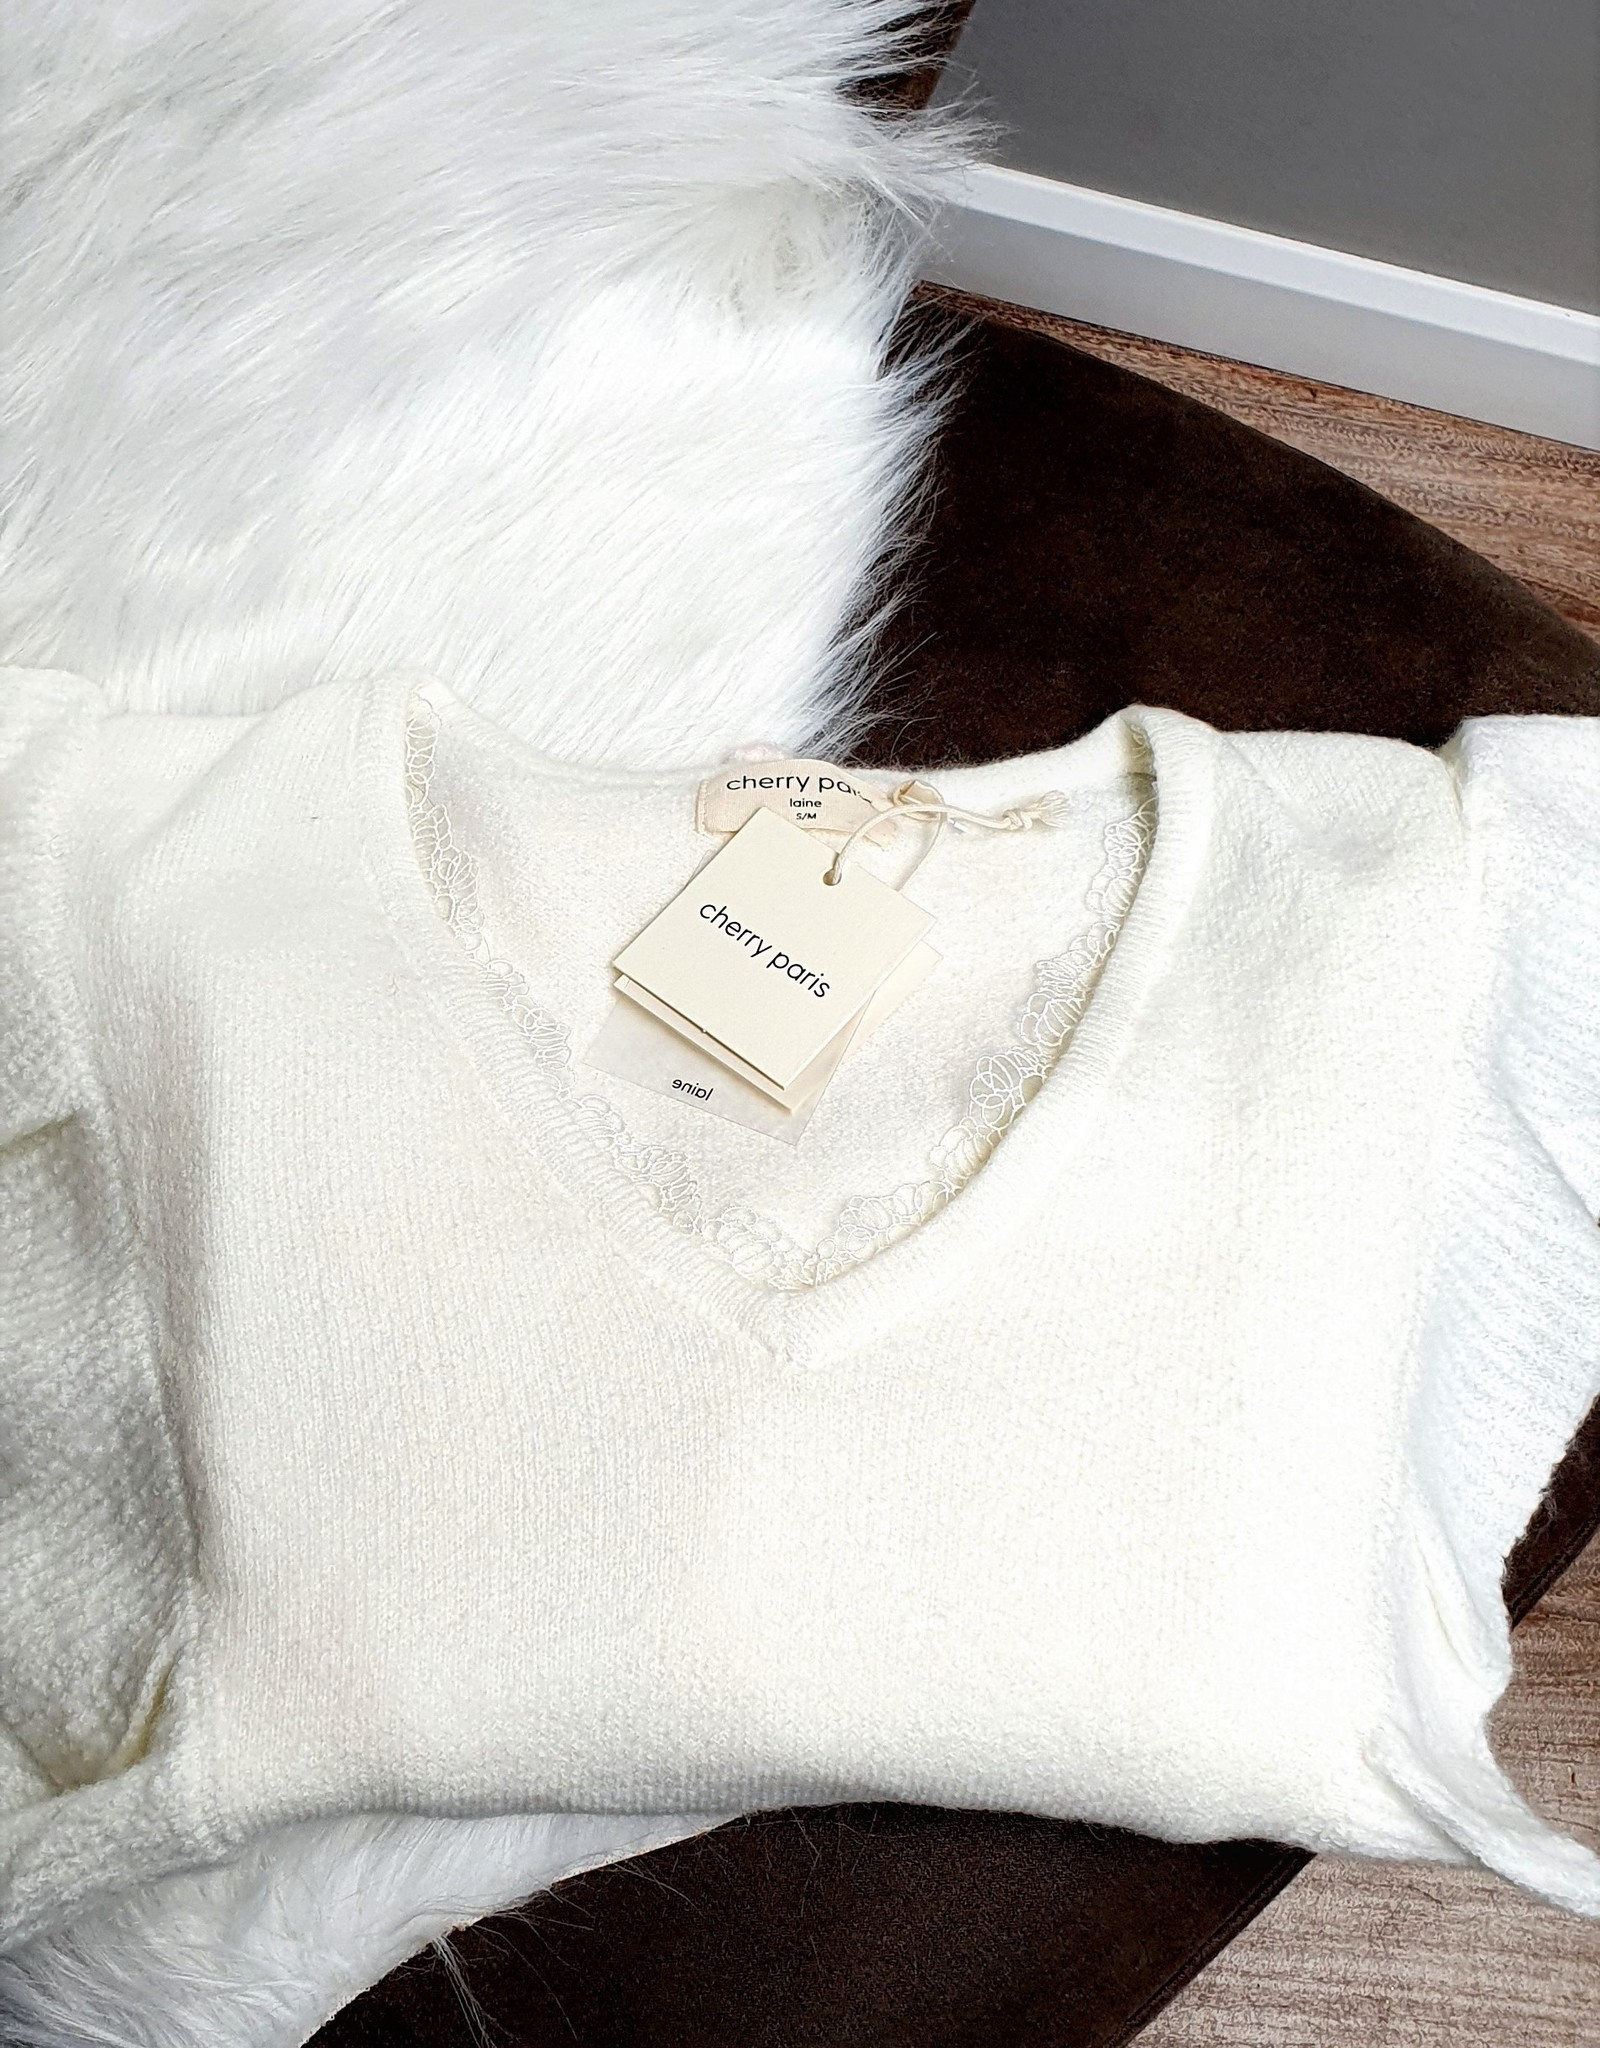 Cherry Paris Officiel Cherry beige sweater